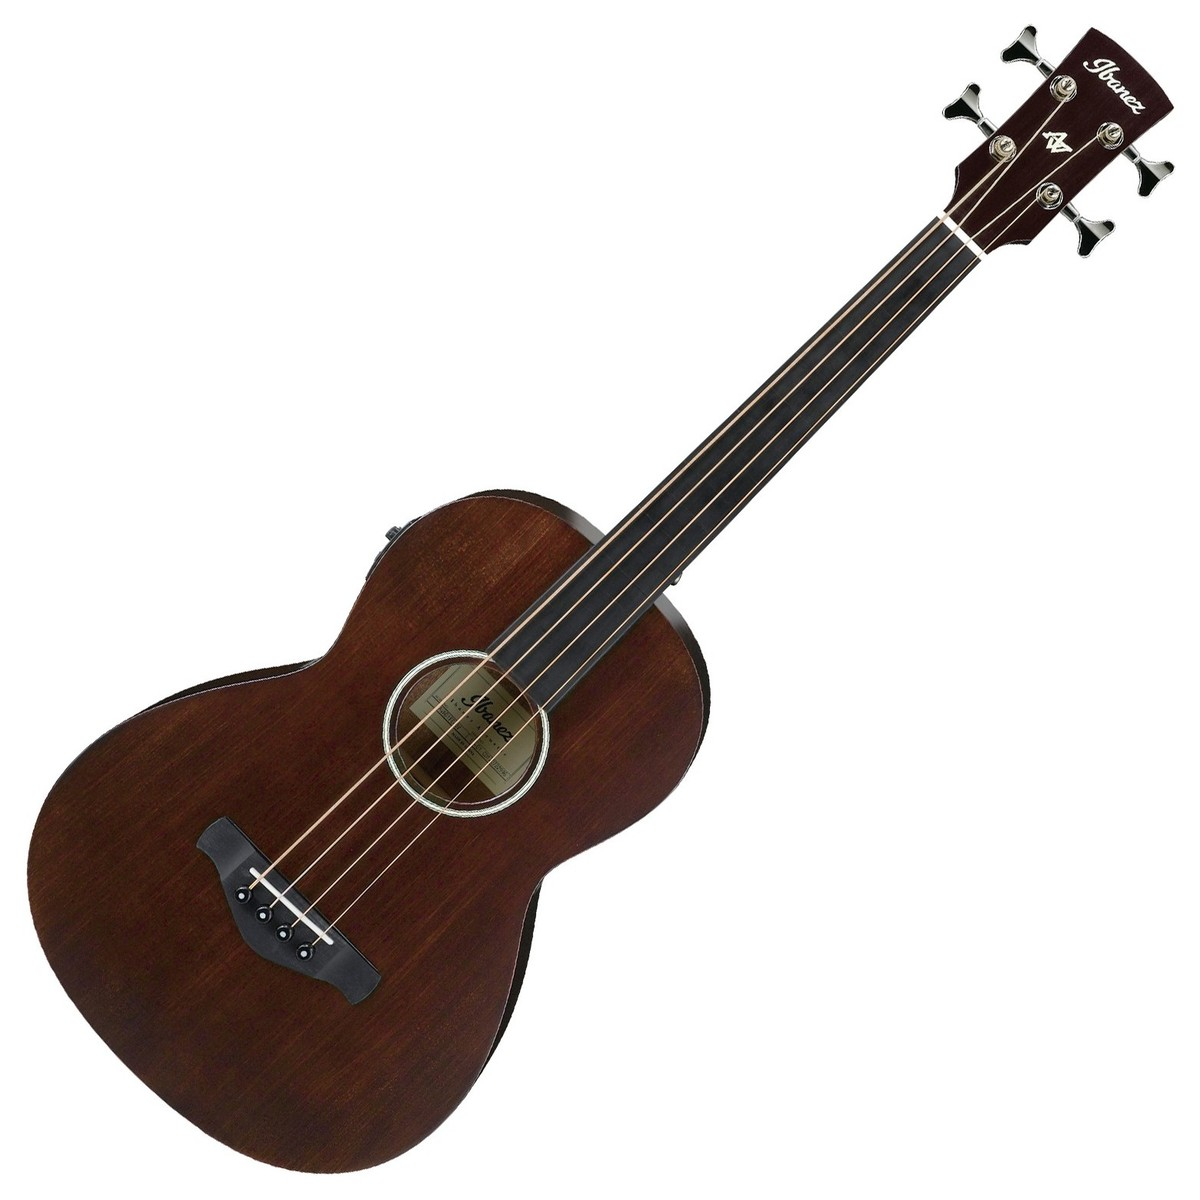 ibanez avnb1fe fretless electro acoustic 2018 brown semi gloss at gear4music. Black Bedroom Furniture Sets. Home Design Ideas